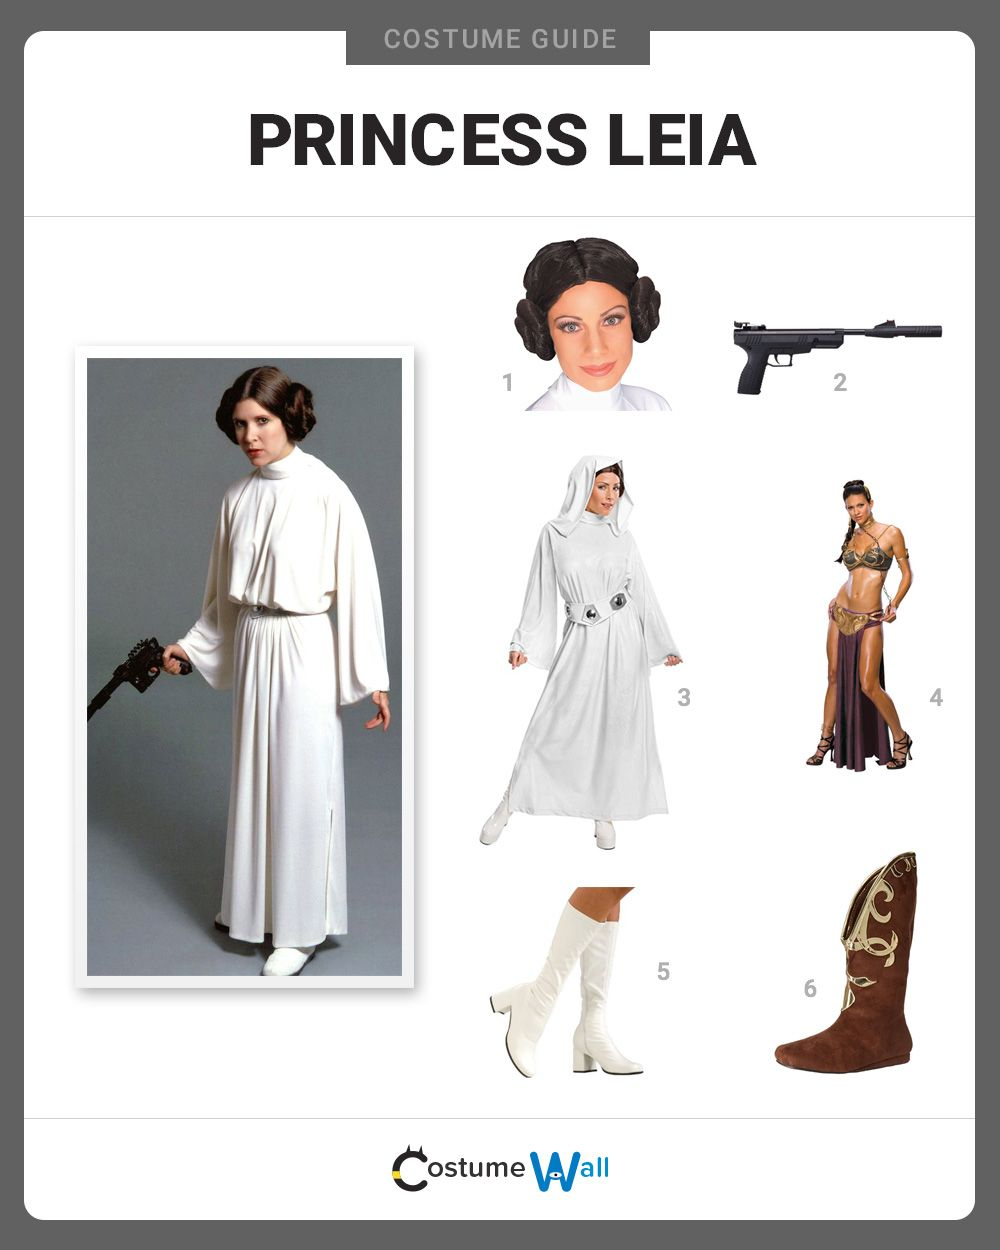 Dress Up As Princess Leia The Beloved Protagonist That We All Love From Star Wars Film Series